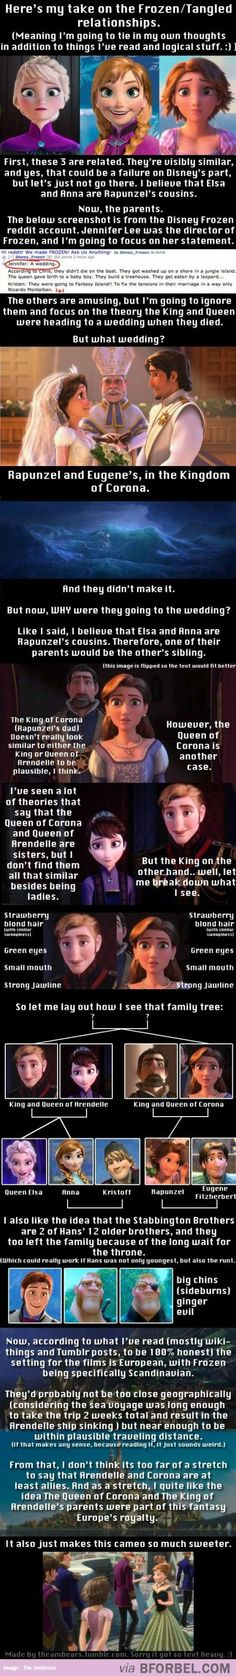 Relationship On Frozen And Tangled I like this one, cause I had thoughts about Hans being related to the brothers from Tangled too